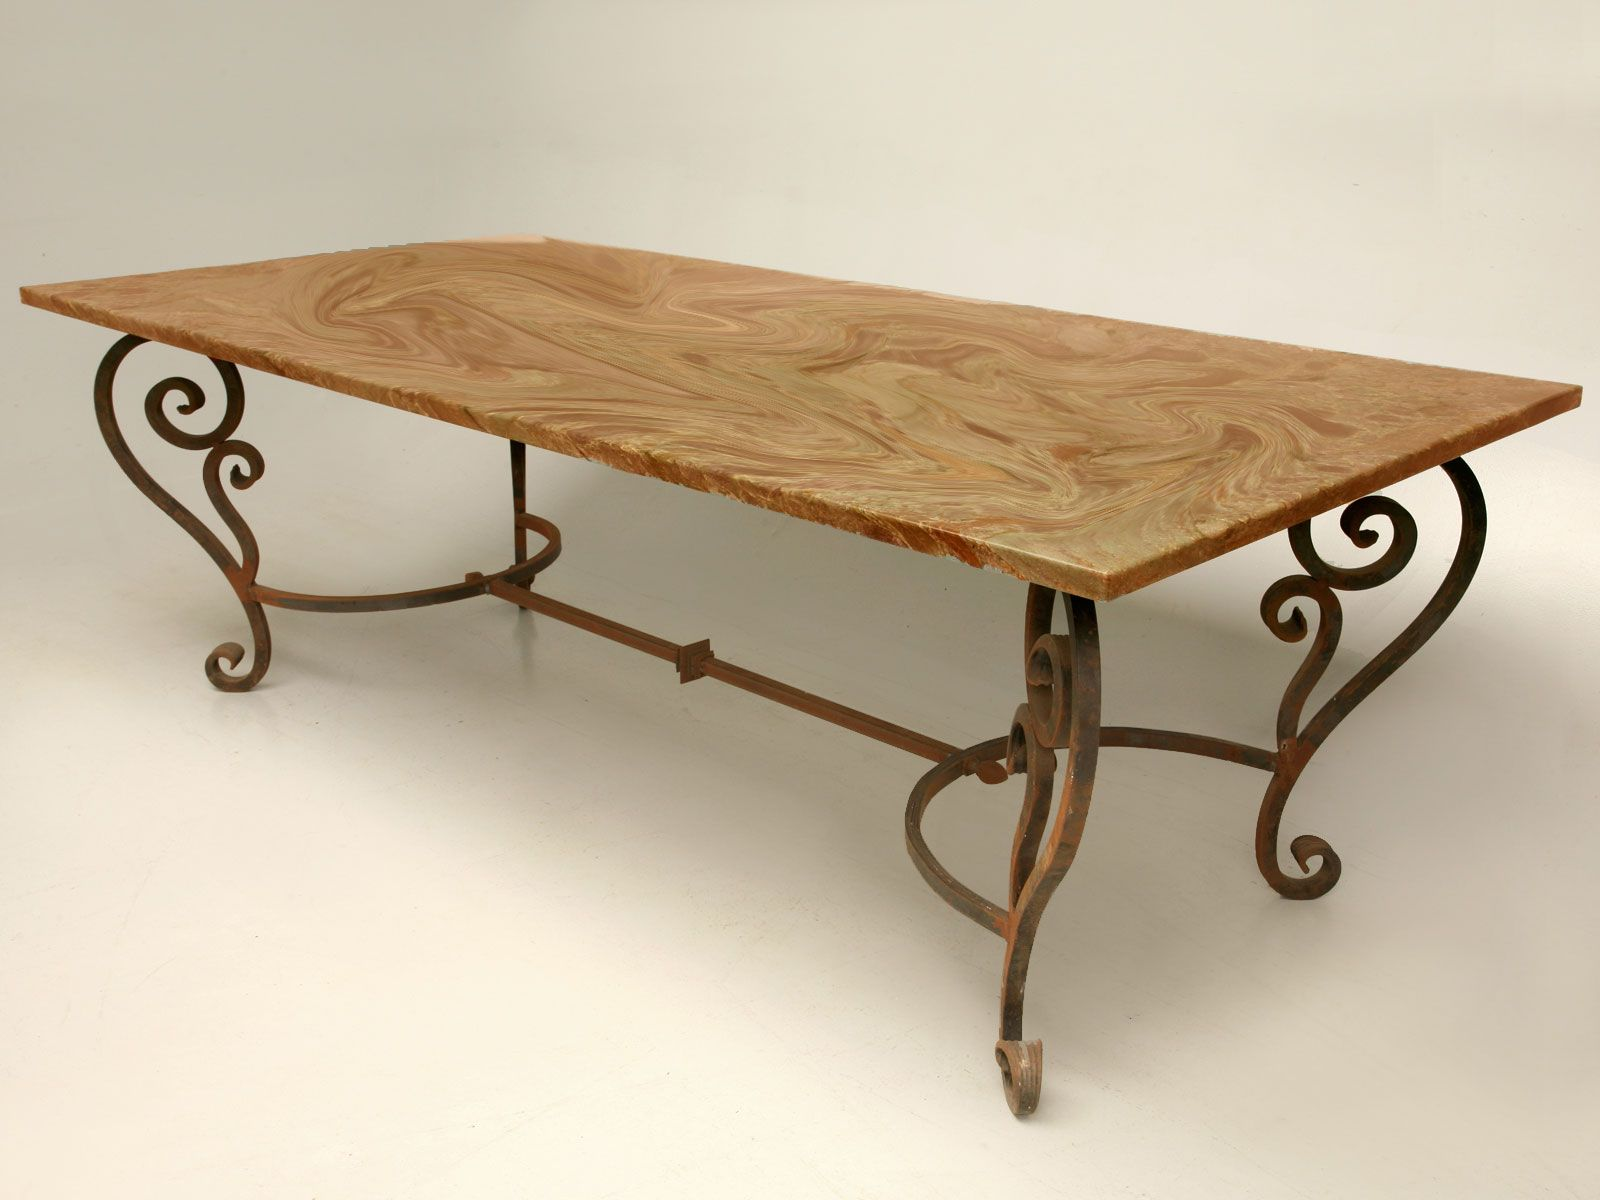 Hand wrought iron table with marble top by - Schmiedeeiserne gartenmobel ...